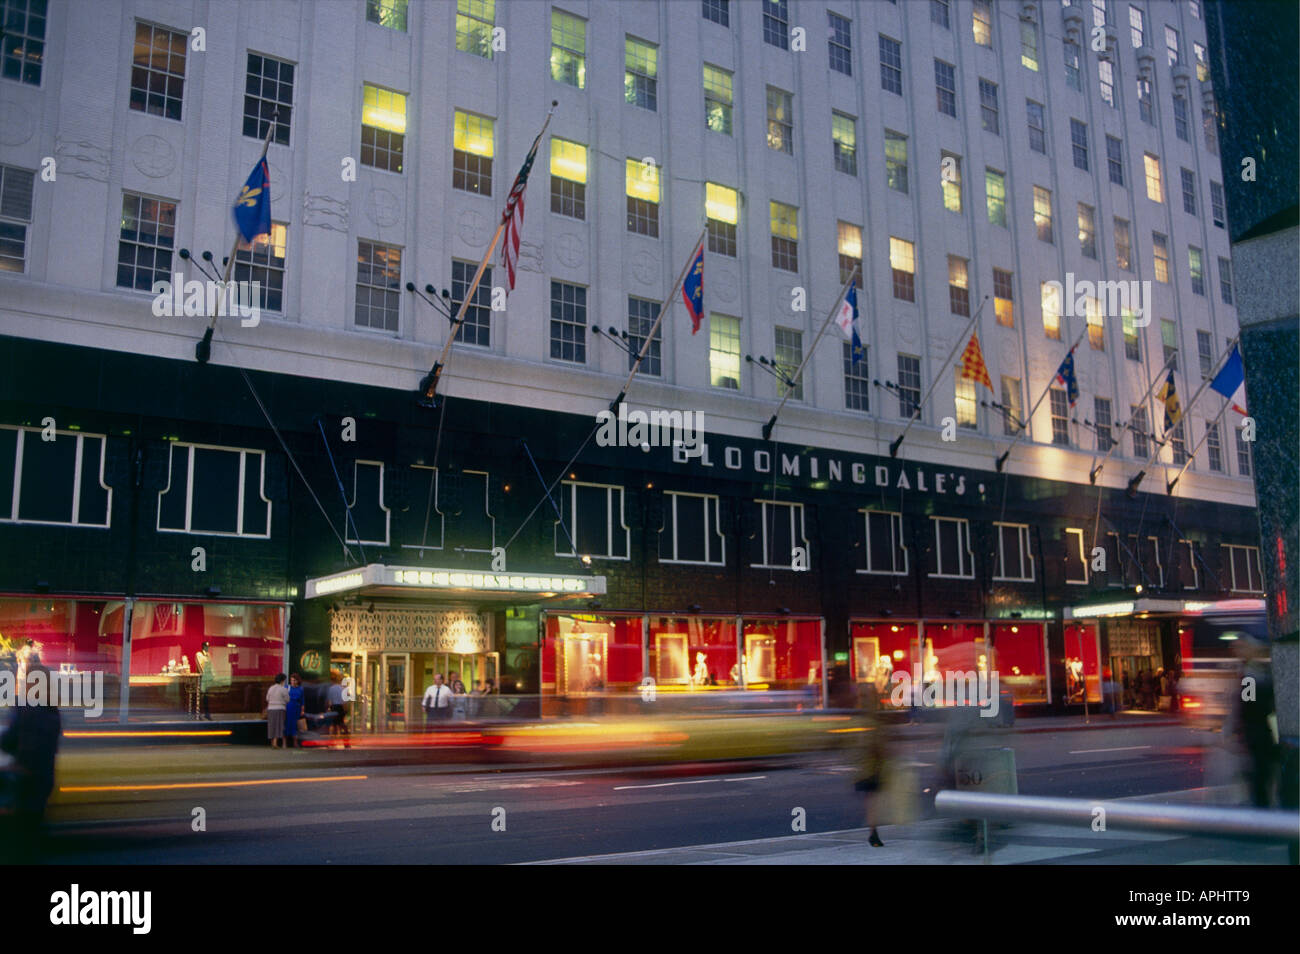 Bloomingdales Department Store Shop On 59th Street And Lexington Avenue